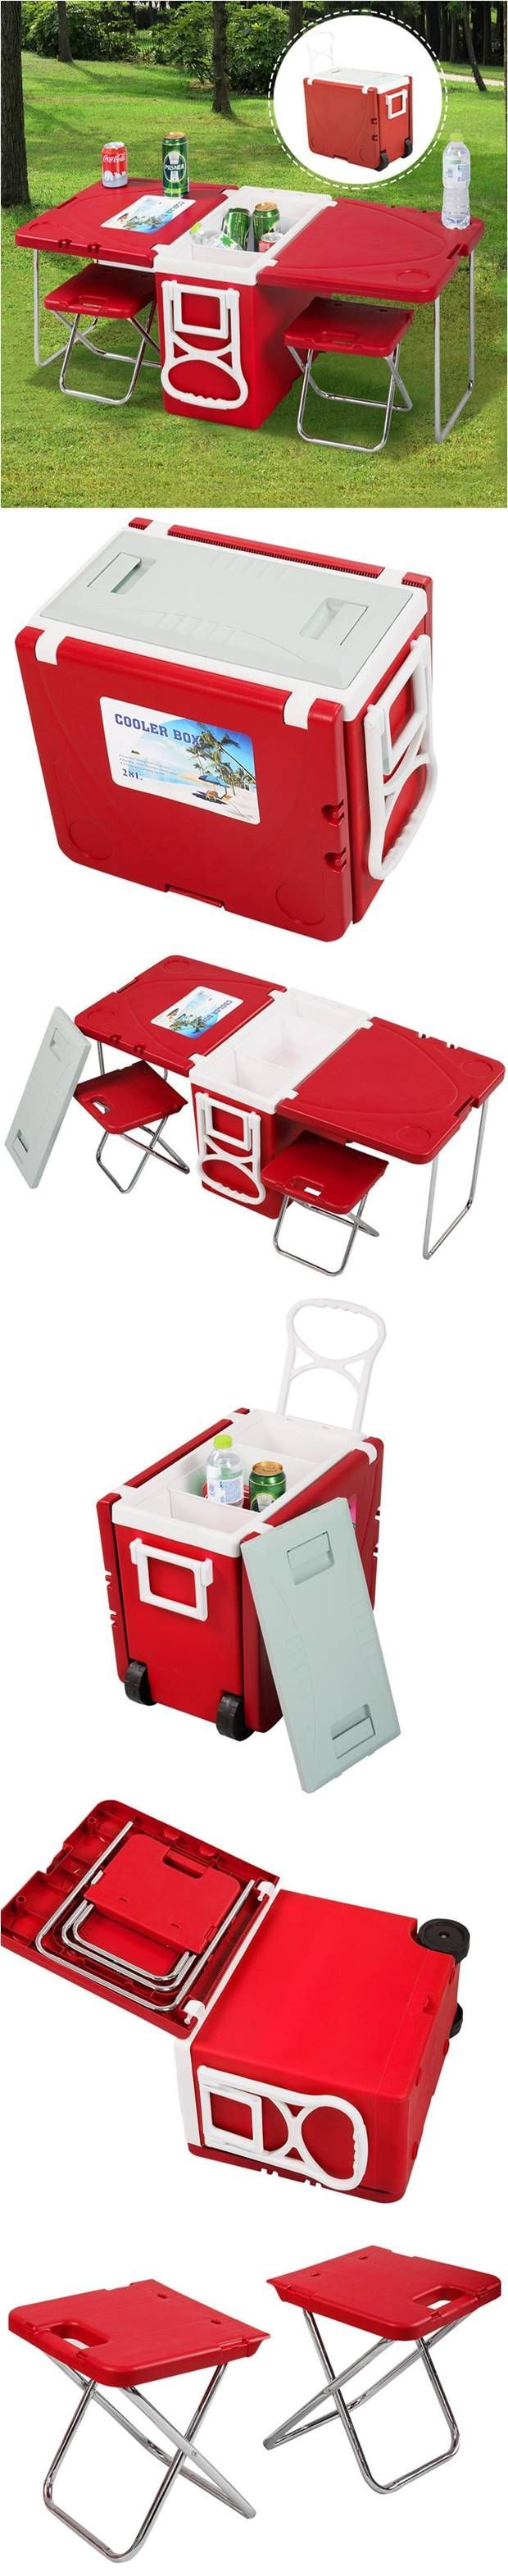 Multi-Functional Rolling Cooler With Picnic Table And Two Chairs! Perfect for picnics in the park or beach, camping and any outdoor parties! #outdoor #picnic #camping